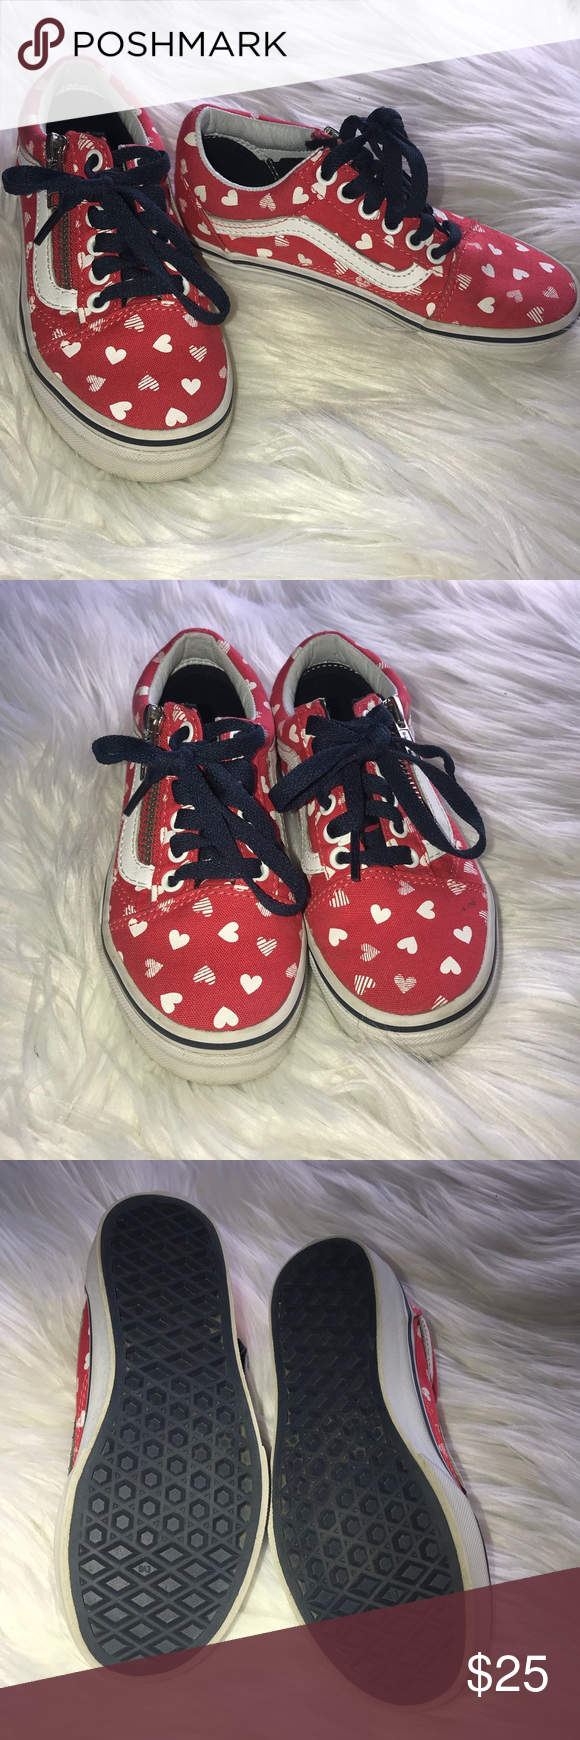 0a7cceacab3407 Girls Old Skool Vans Side Zip Heart Vans Size 12.5 Girls Old Skool Vans  Side Zip